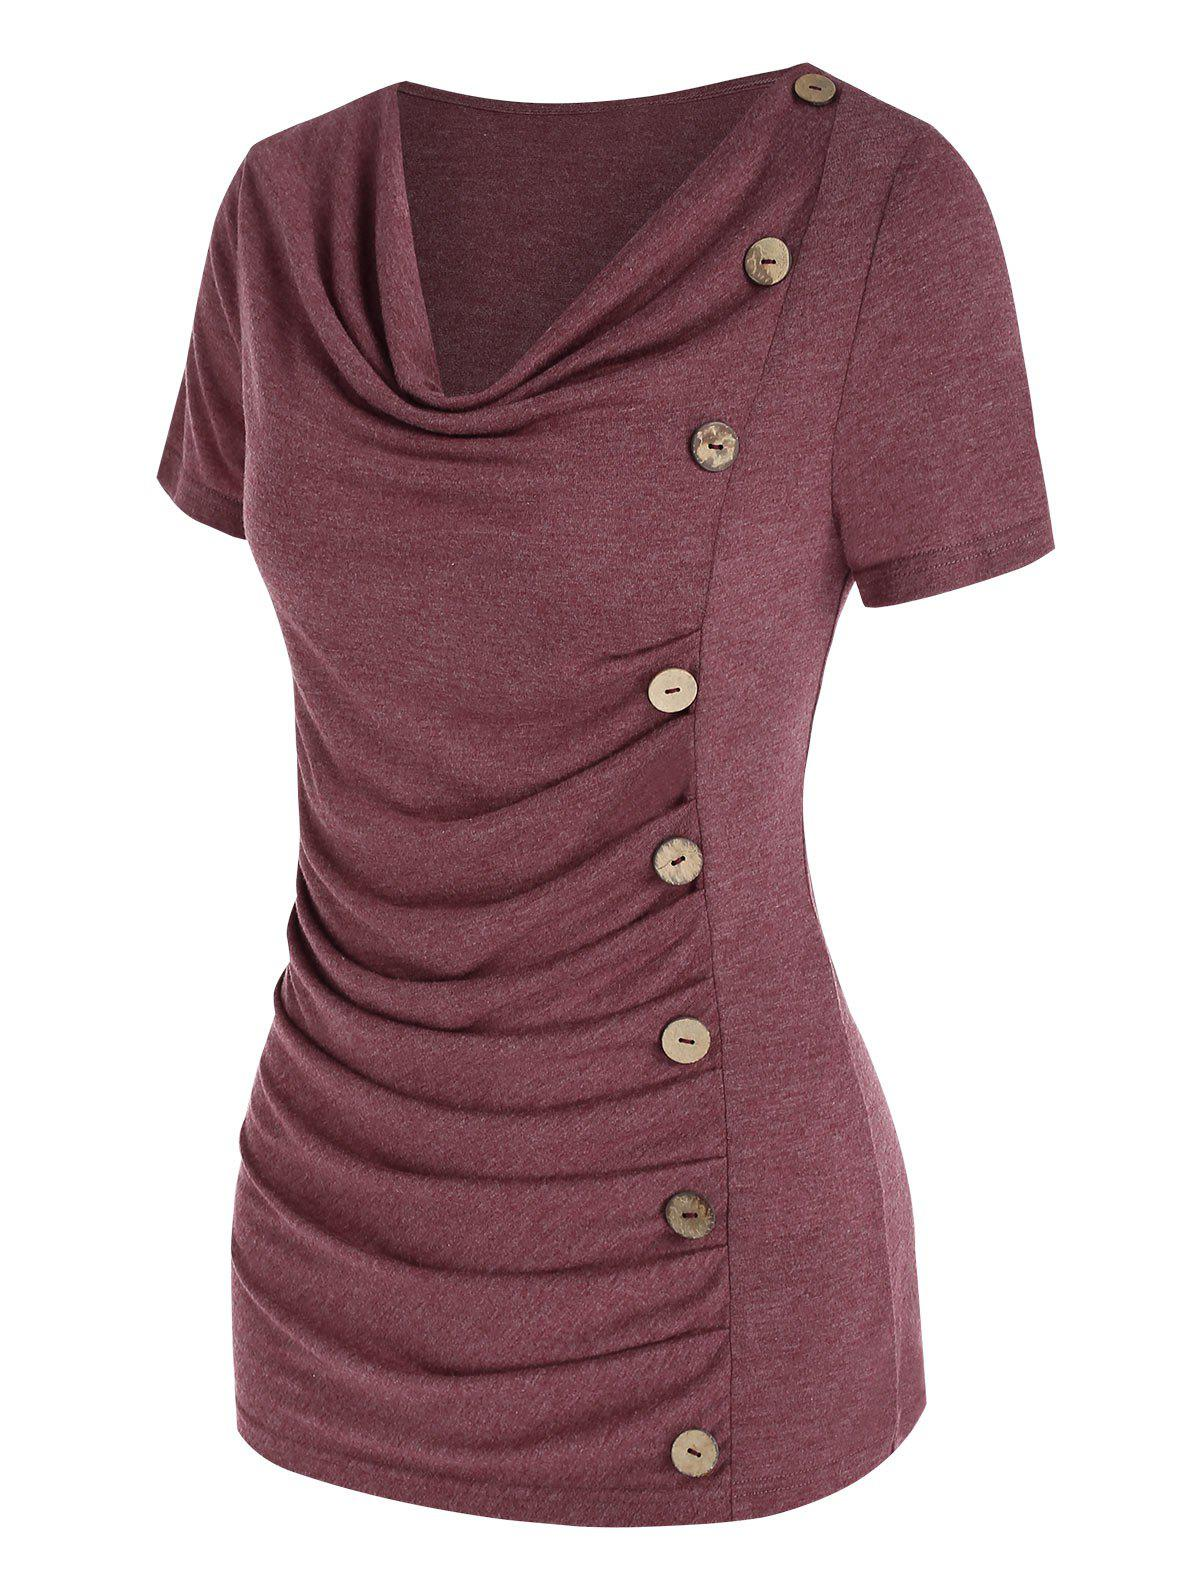 Cowl Neck Ruched Button Asymmetrical T Shirt - DEEP RED M